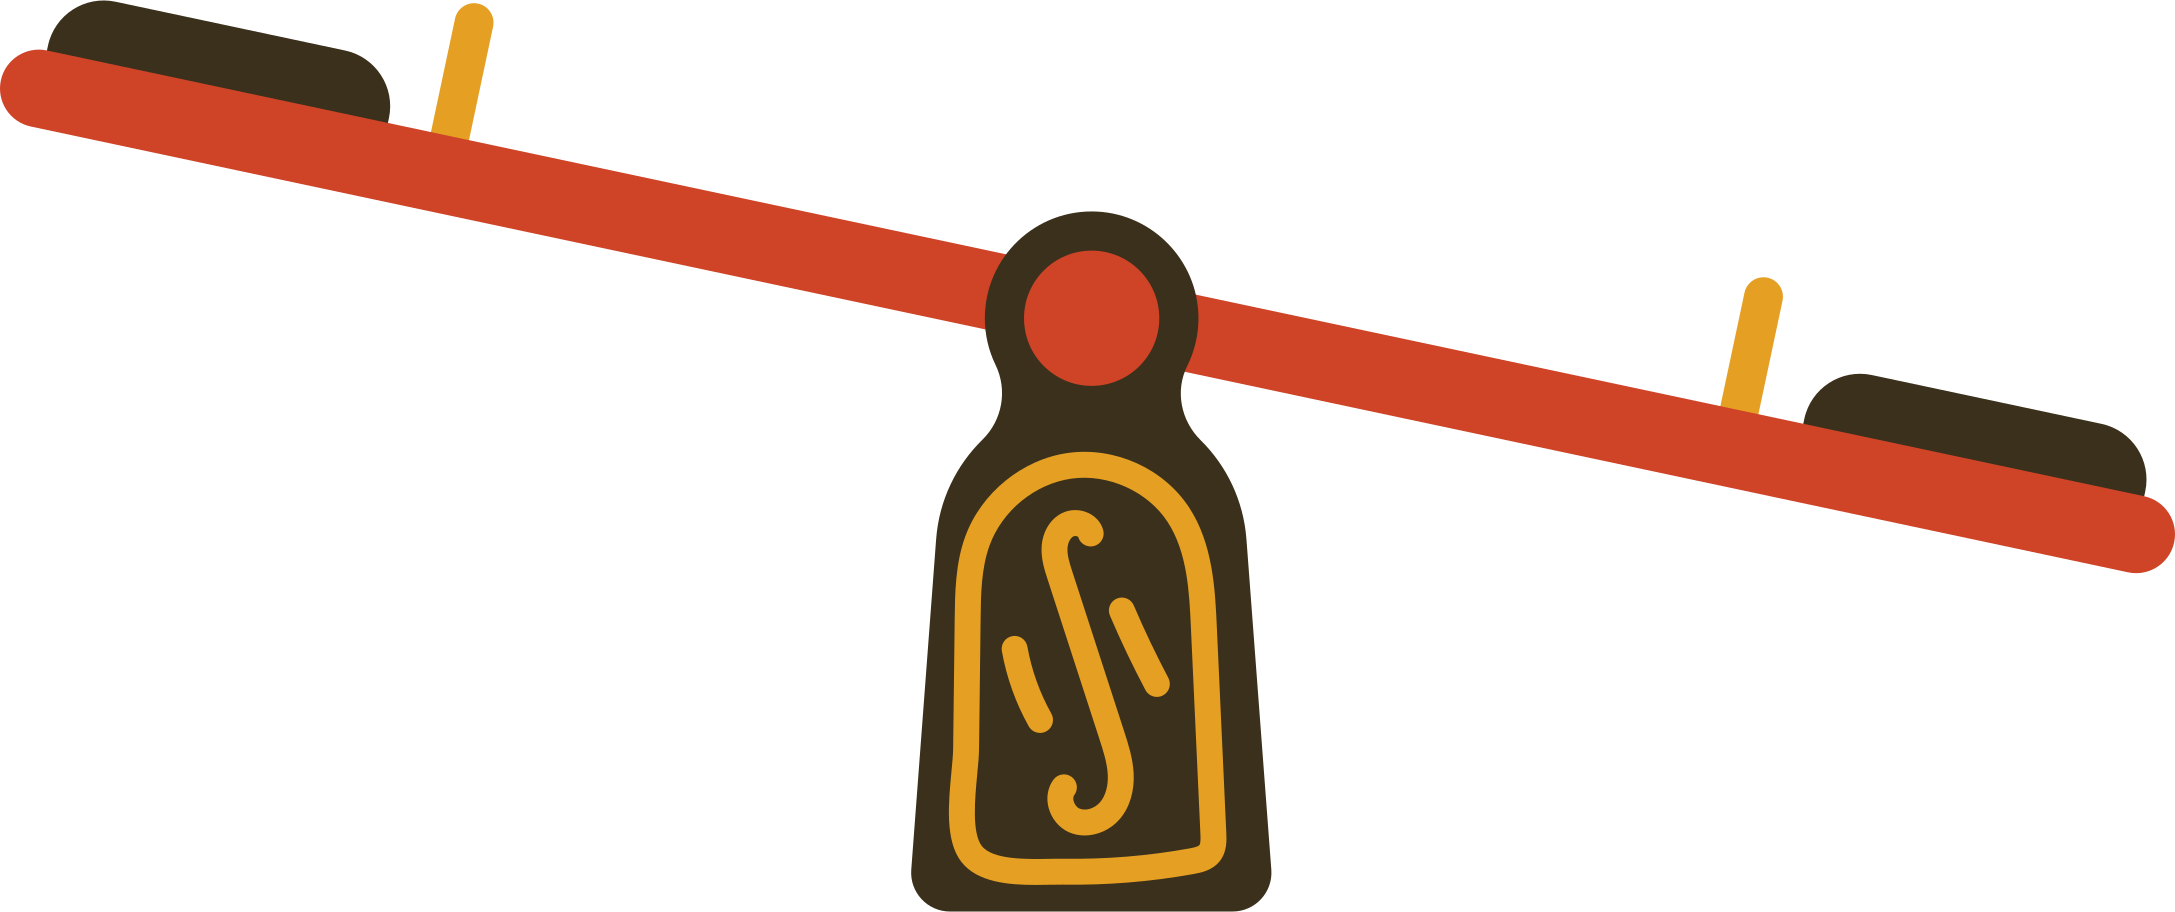 style seesaw Vector images in PNG and SVG | Icons8 Illustrations